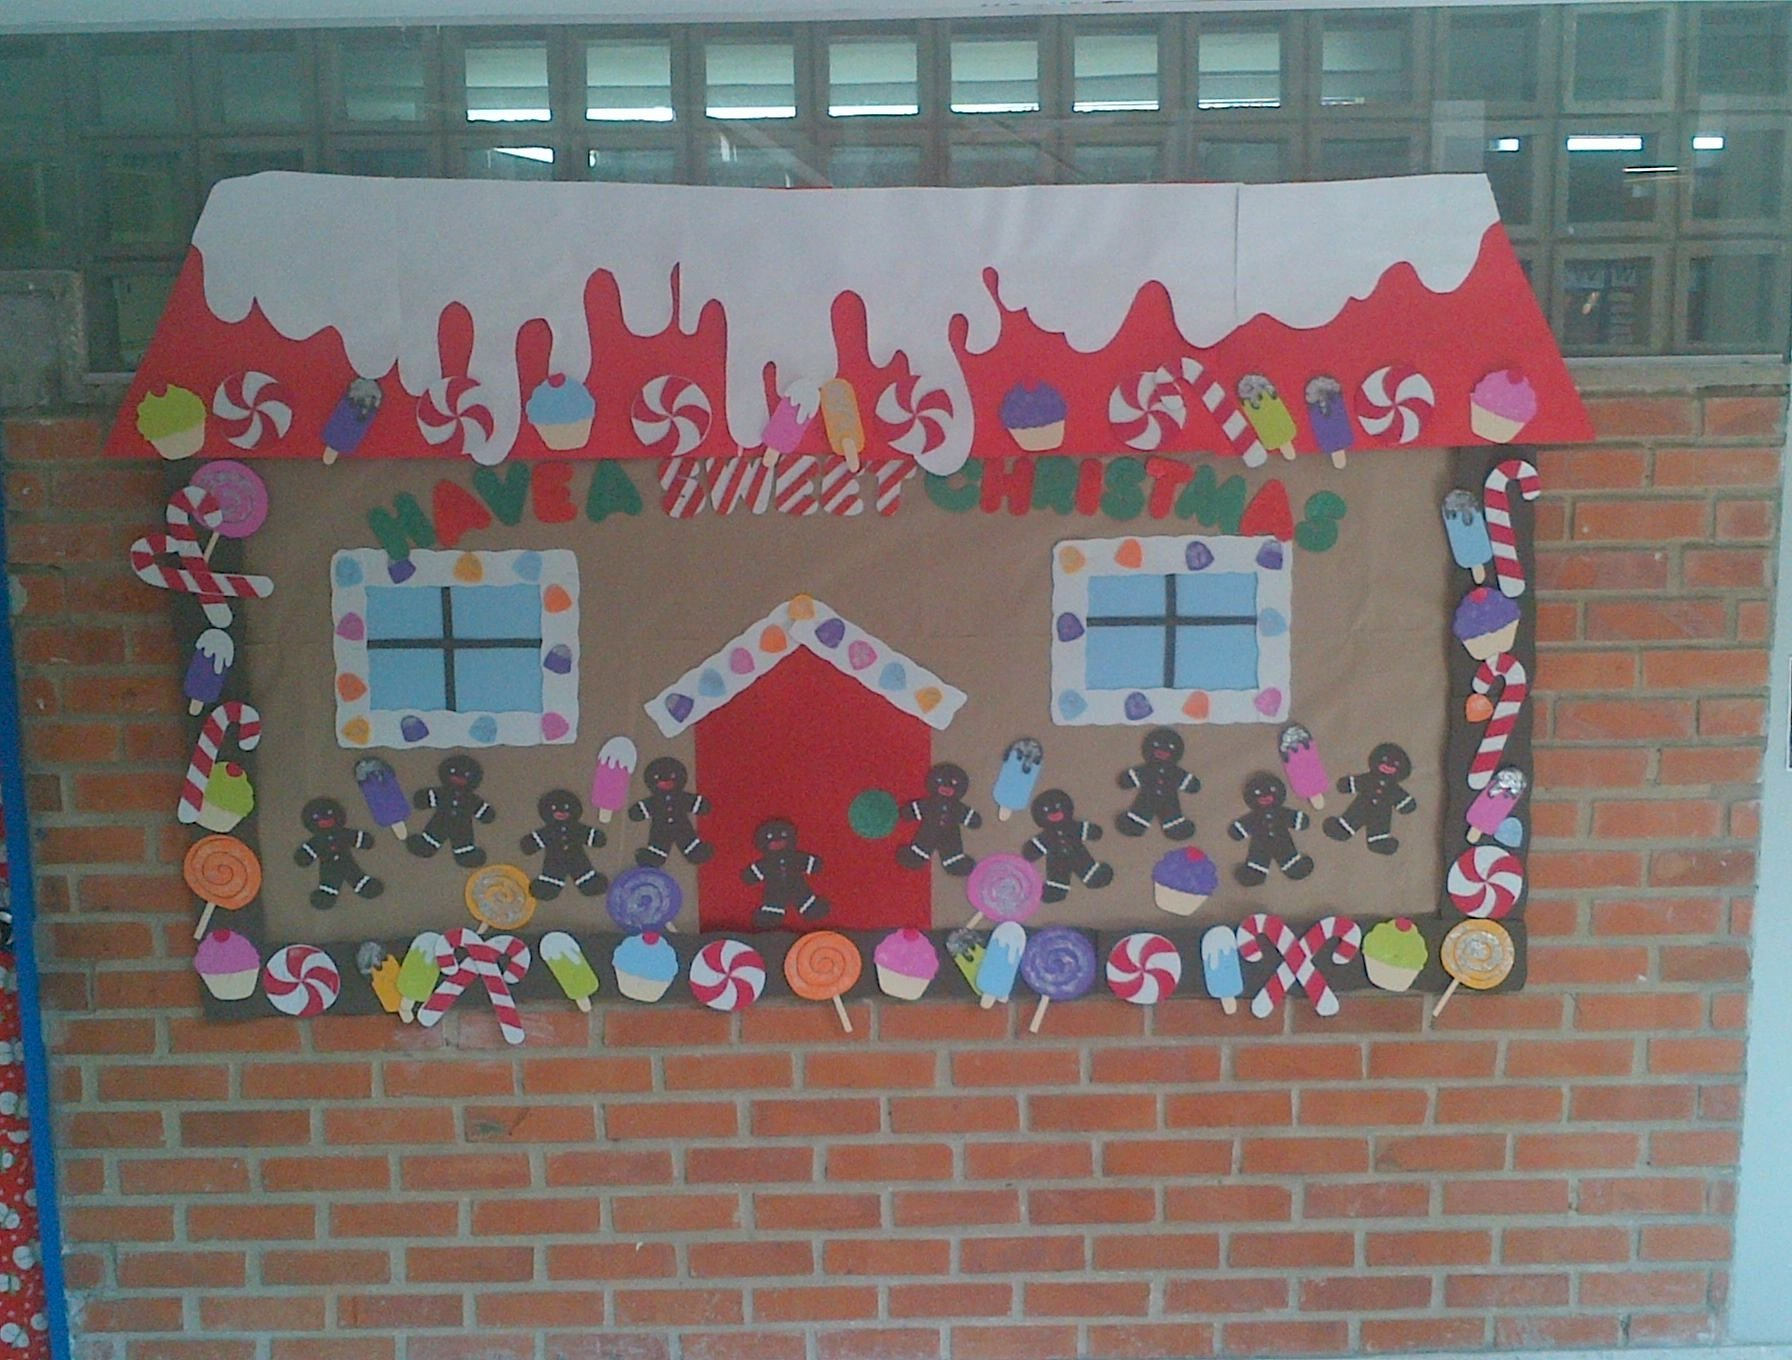 10 Famous Christmas Bulletin Board Ideas For Preschool christmas bulletin boardjust make the b board into the house 2020